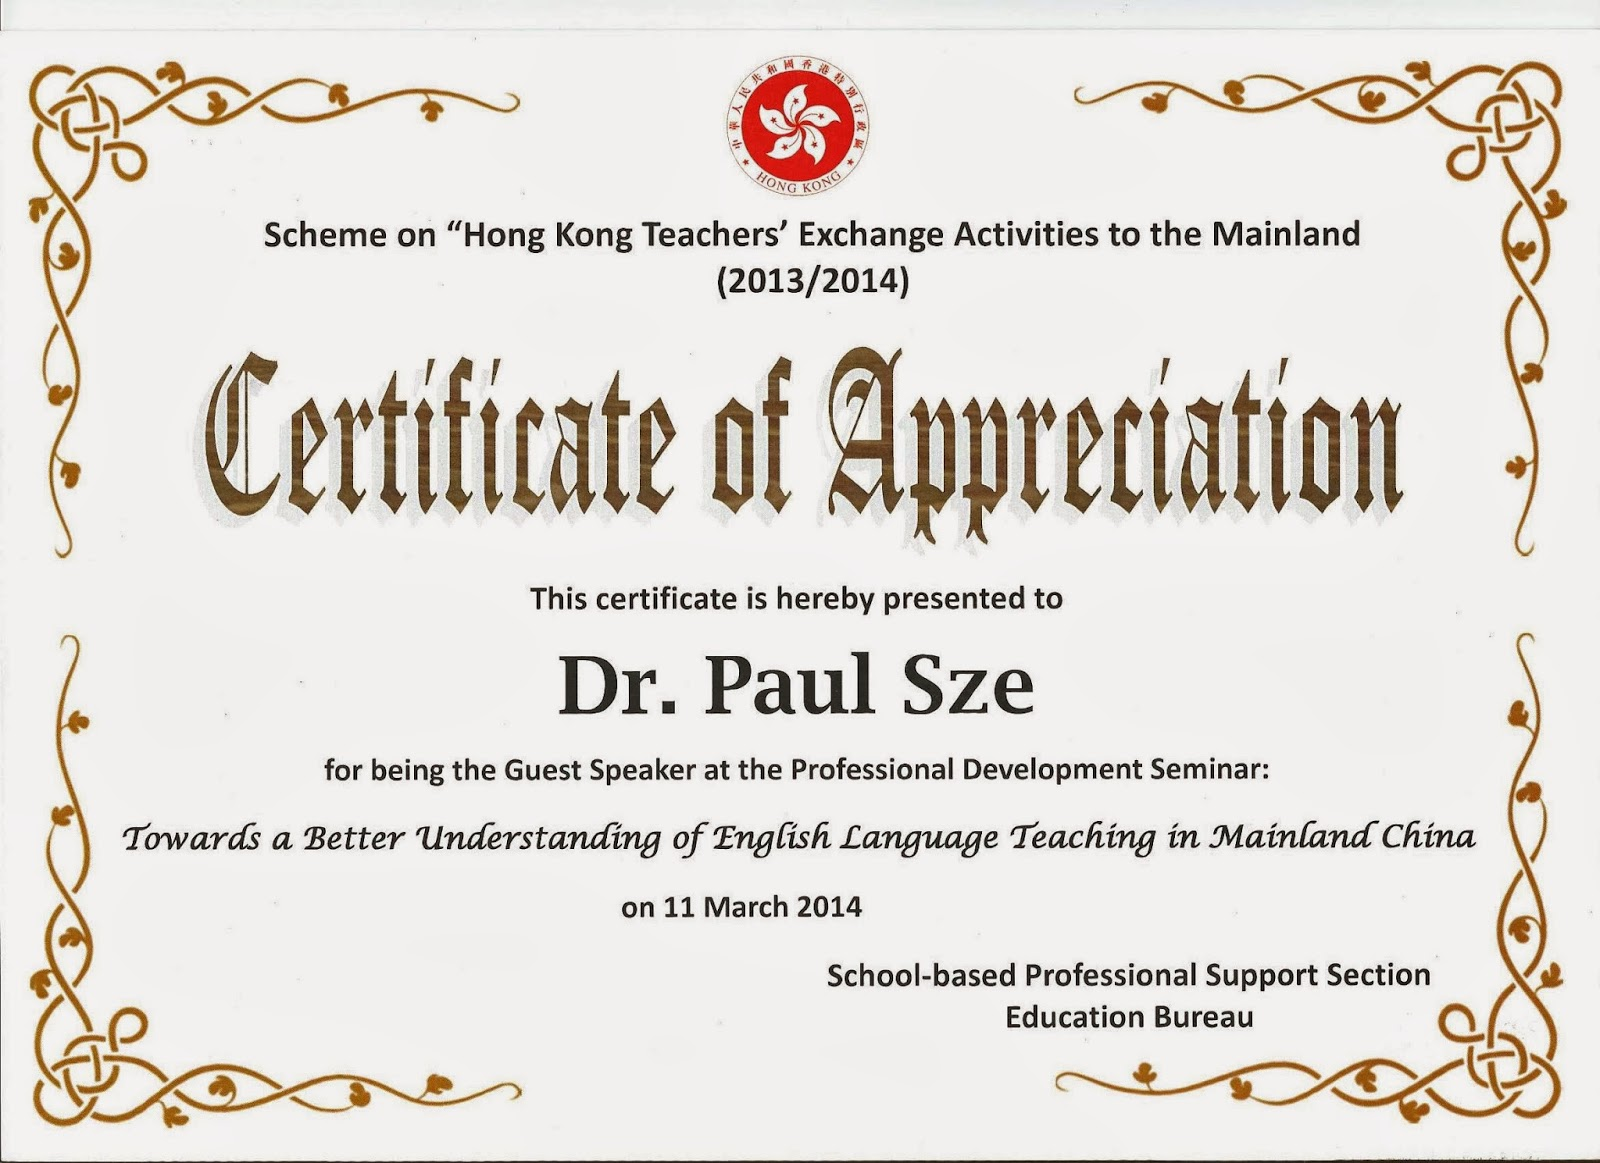 Sample Wording For Certificate Of Appreciation Simple Promissory Sample  Wording For Certificate Of Appreciation Health And  Certificates Of Appreciation Wording Samples